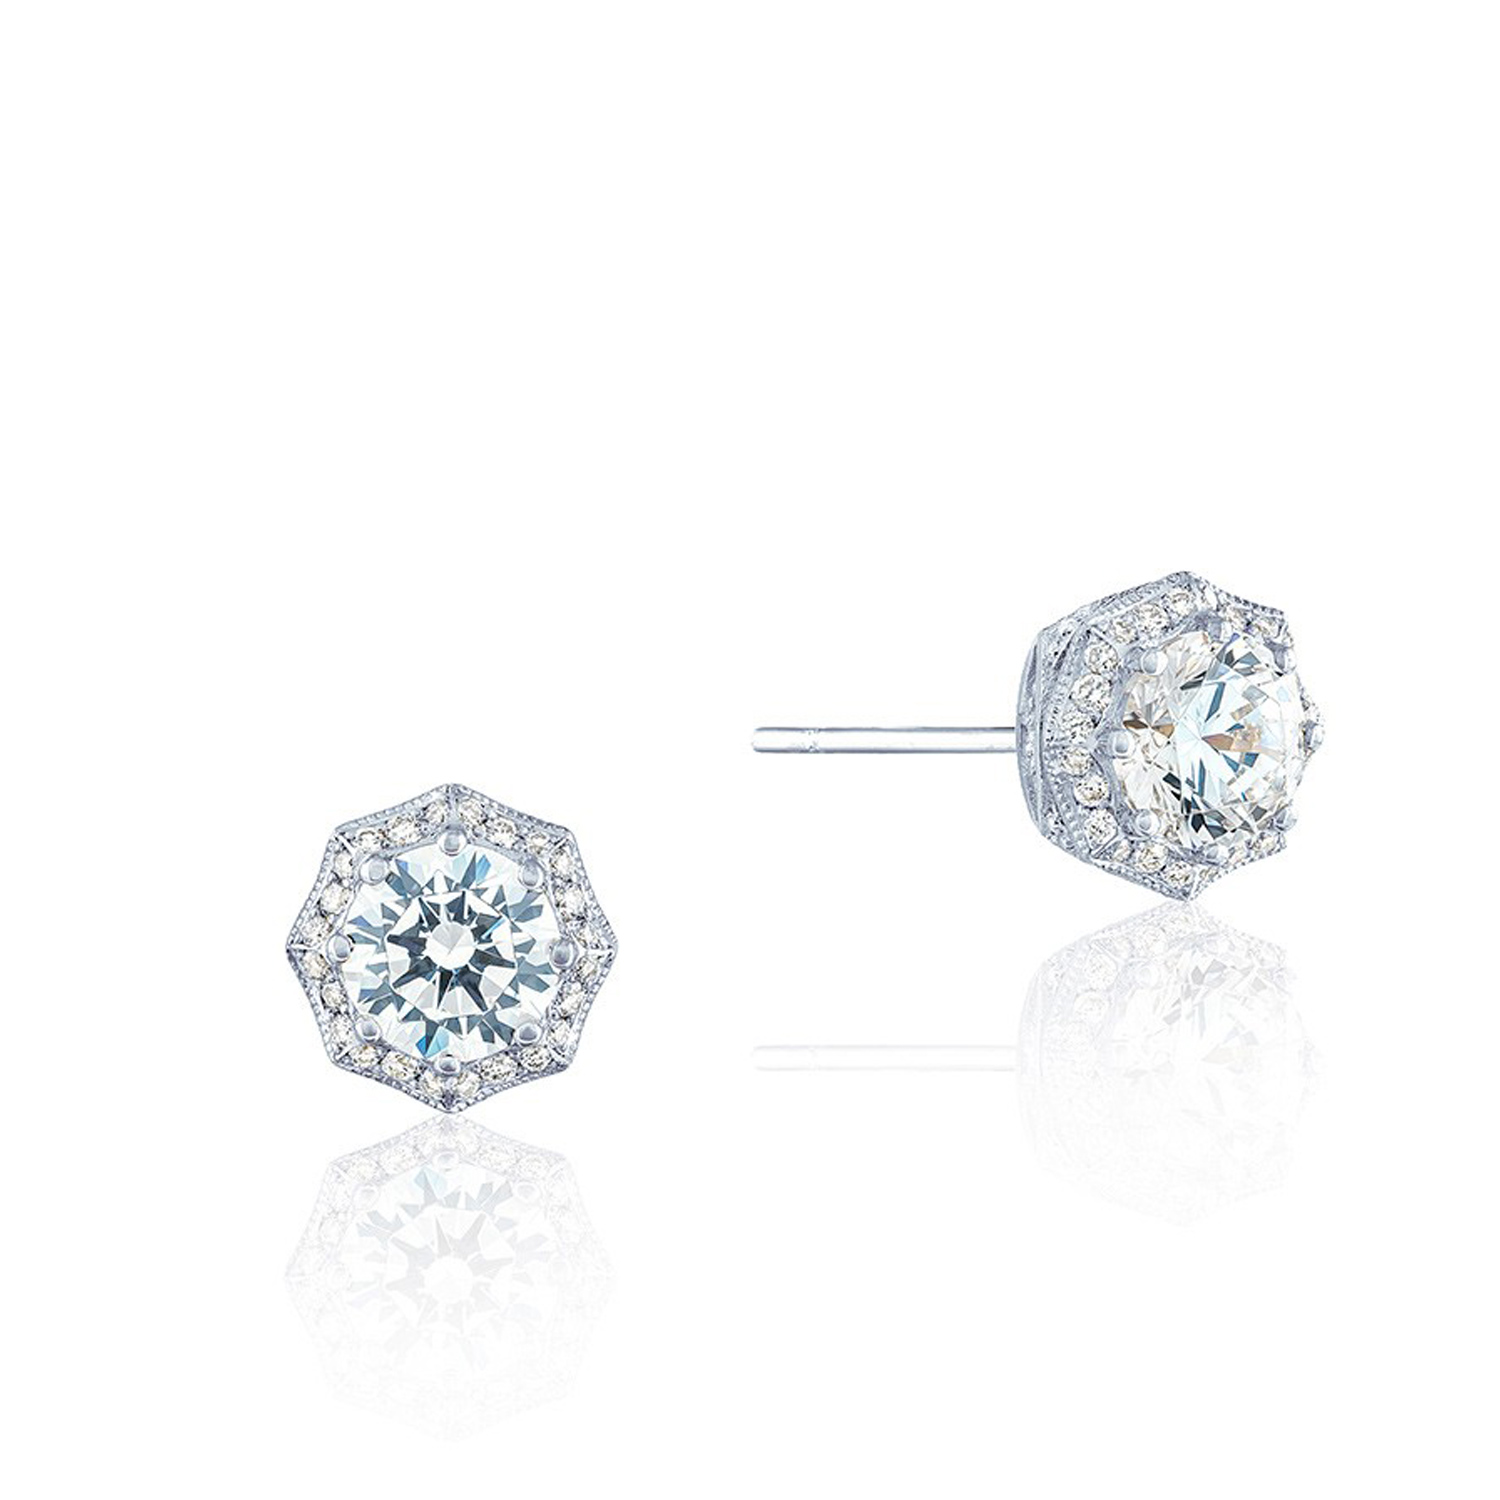 Fe804rd Tacori Pee Crescent Stud Earrings